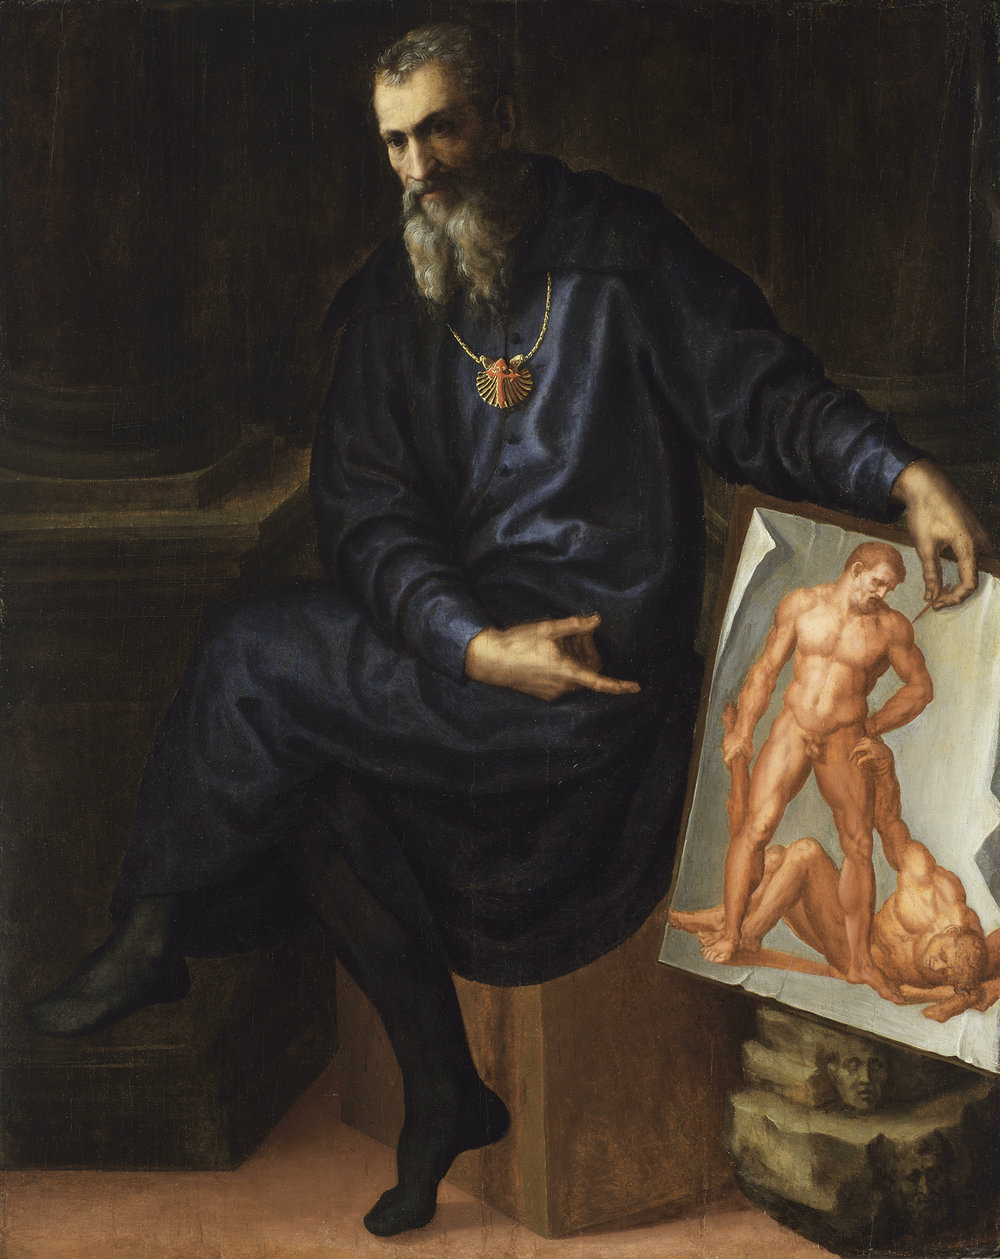 Self-Portrait , Baccio Bandinelli, 1530 (wearing a gold chain with a pendant bearing the symbol of the chivalric Order of St. James)